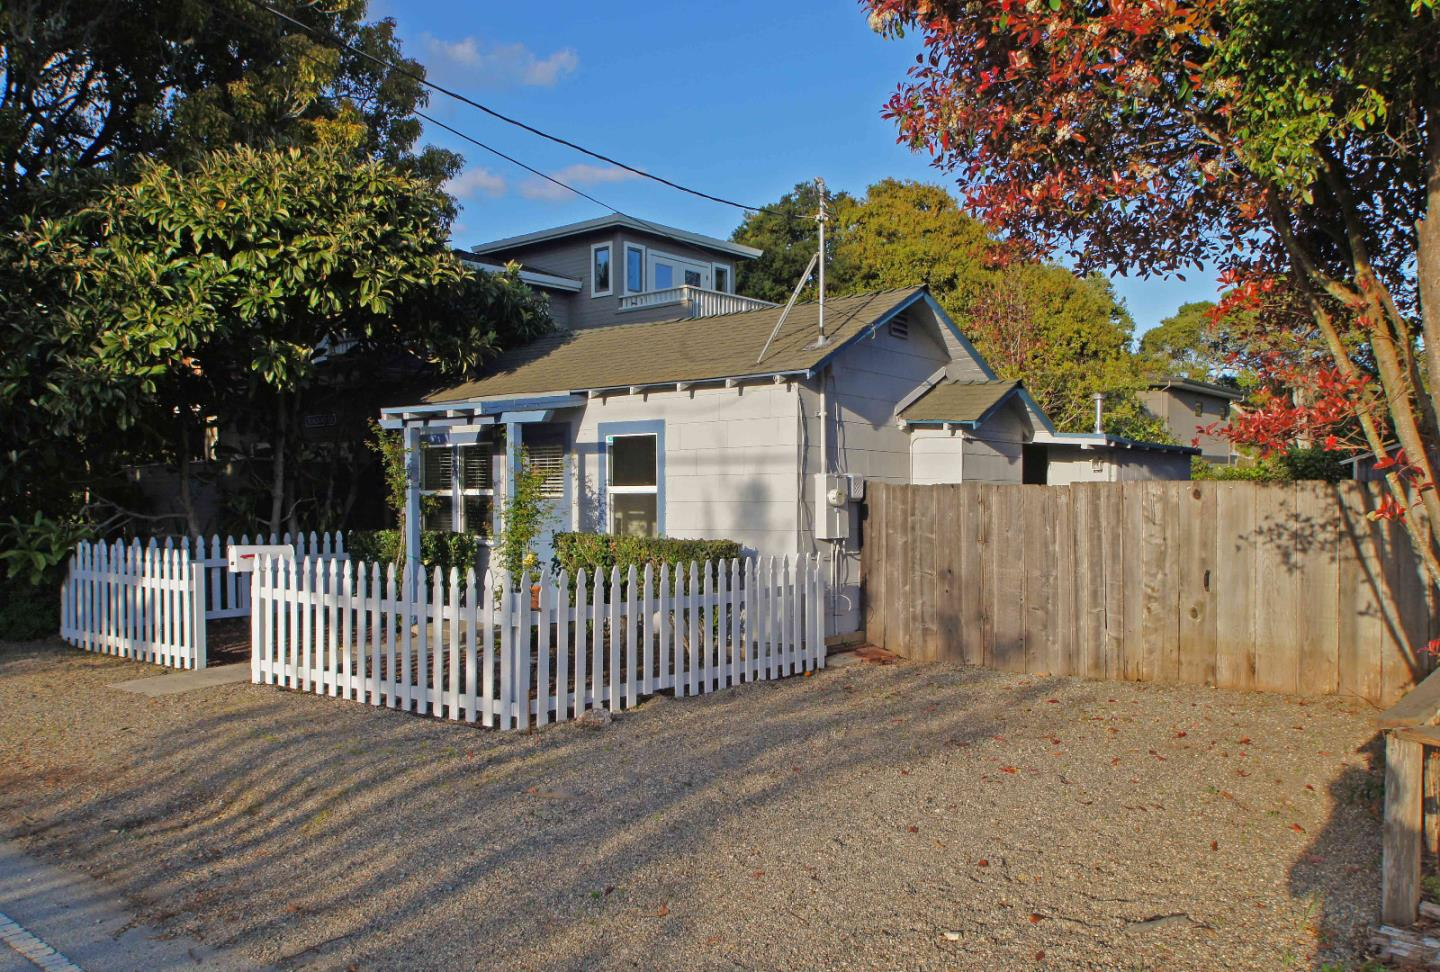 Classic Santa Cruz Beach Cottage:  Prime 9th Avenue location just three blocks to Twin Lakes State Beach (the Crows Nest Beach).  This is a beautiful spot in one of the favorite Santa Cruz beach neighborhoods.  There are views to the beach from the street in front of the home.  The evening sun drenches the front yard.  Within walking distance are The Santa Cruz Yacht Harbor and many fabulous beaches and surf spots.